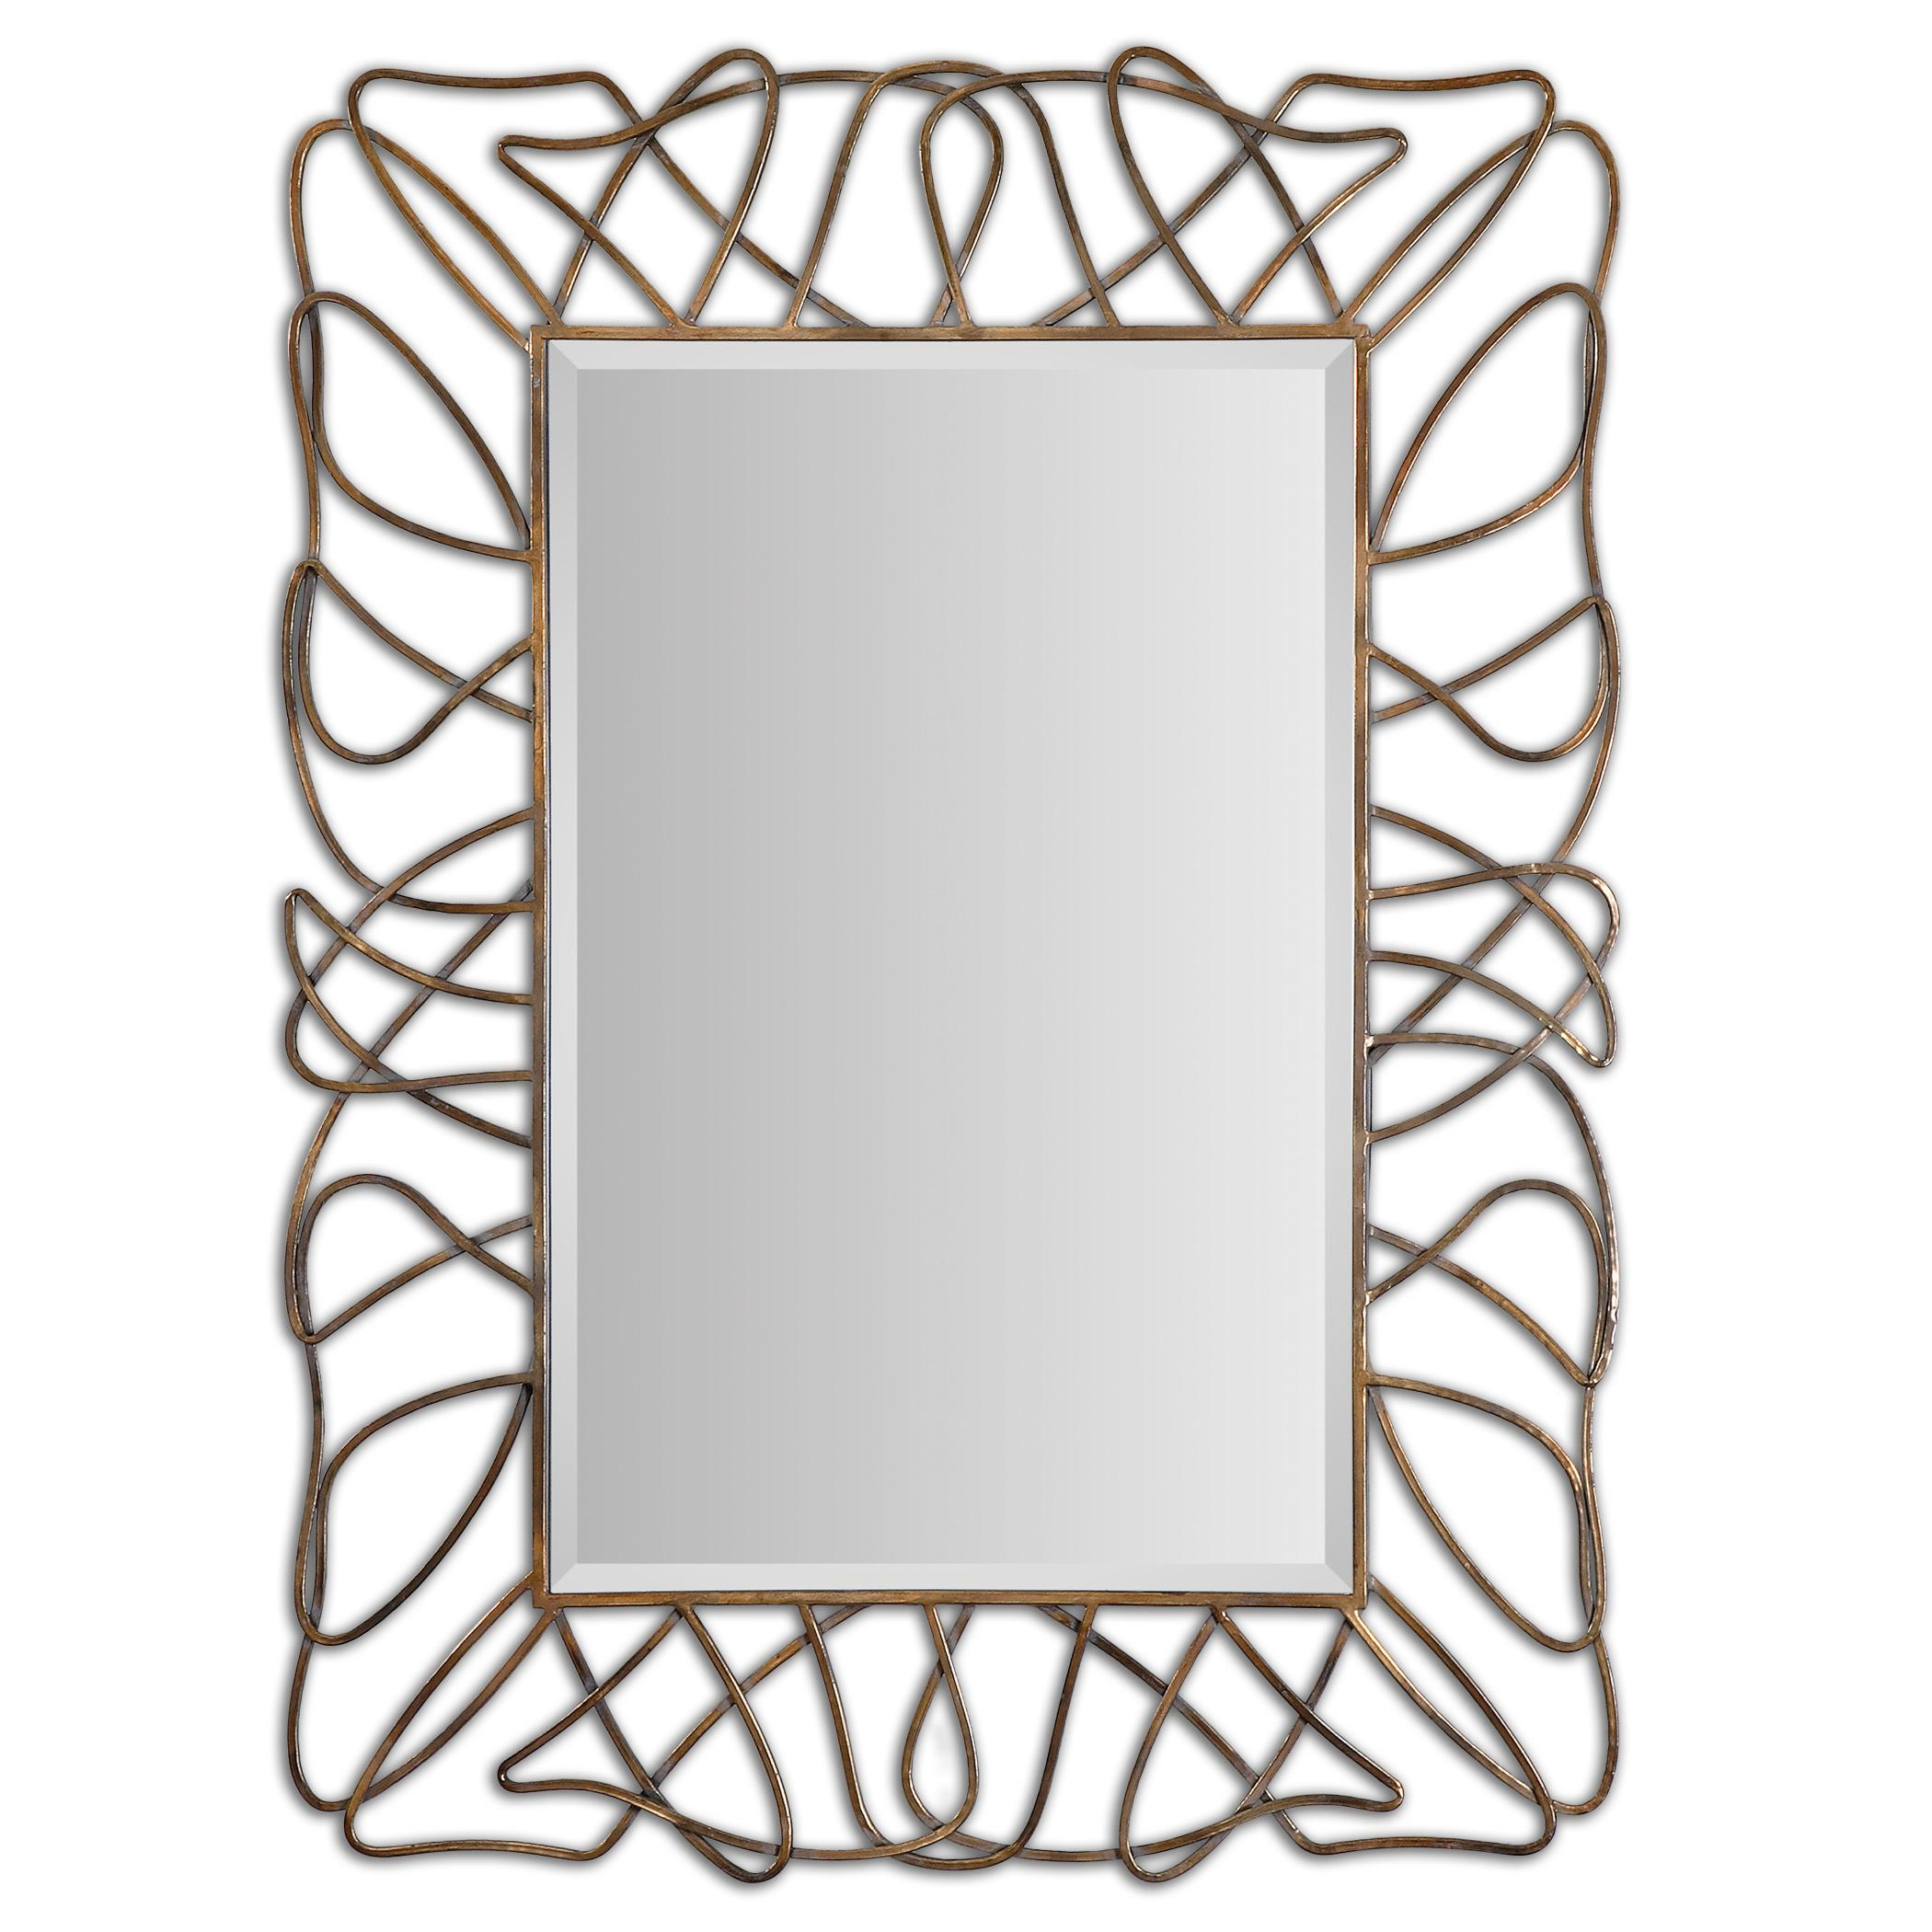 Uttermost Mirrors Halsey Gold Metal Mirror - Item Number: 12878